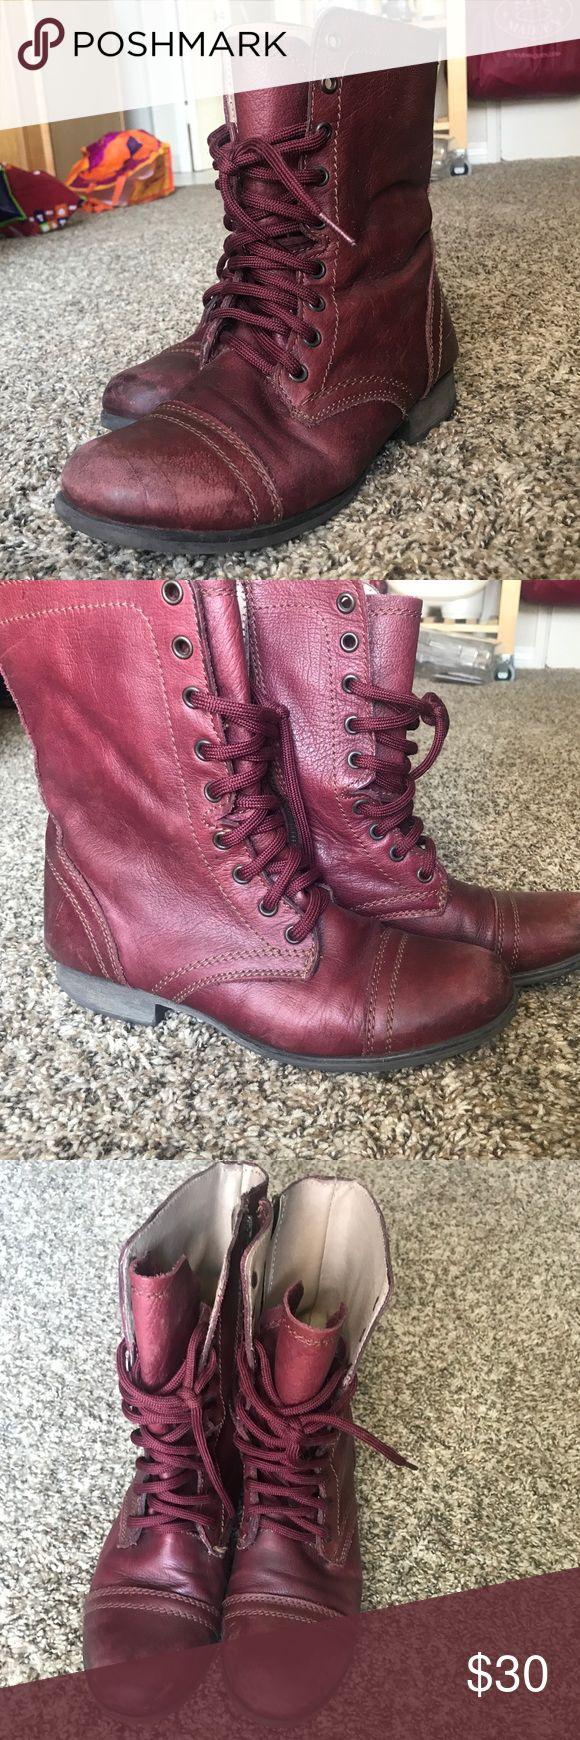 Steve Madden Troopa Combat Boots Lightly Worn 8.5 Burgandy Boots. Very Comfortable, and very stylish. Made with leather, and rubber soles. Zippers are located on the side. Steve Madden Shoes Lace Up Boots